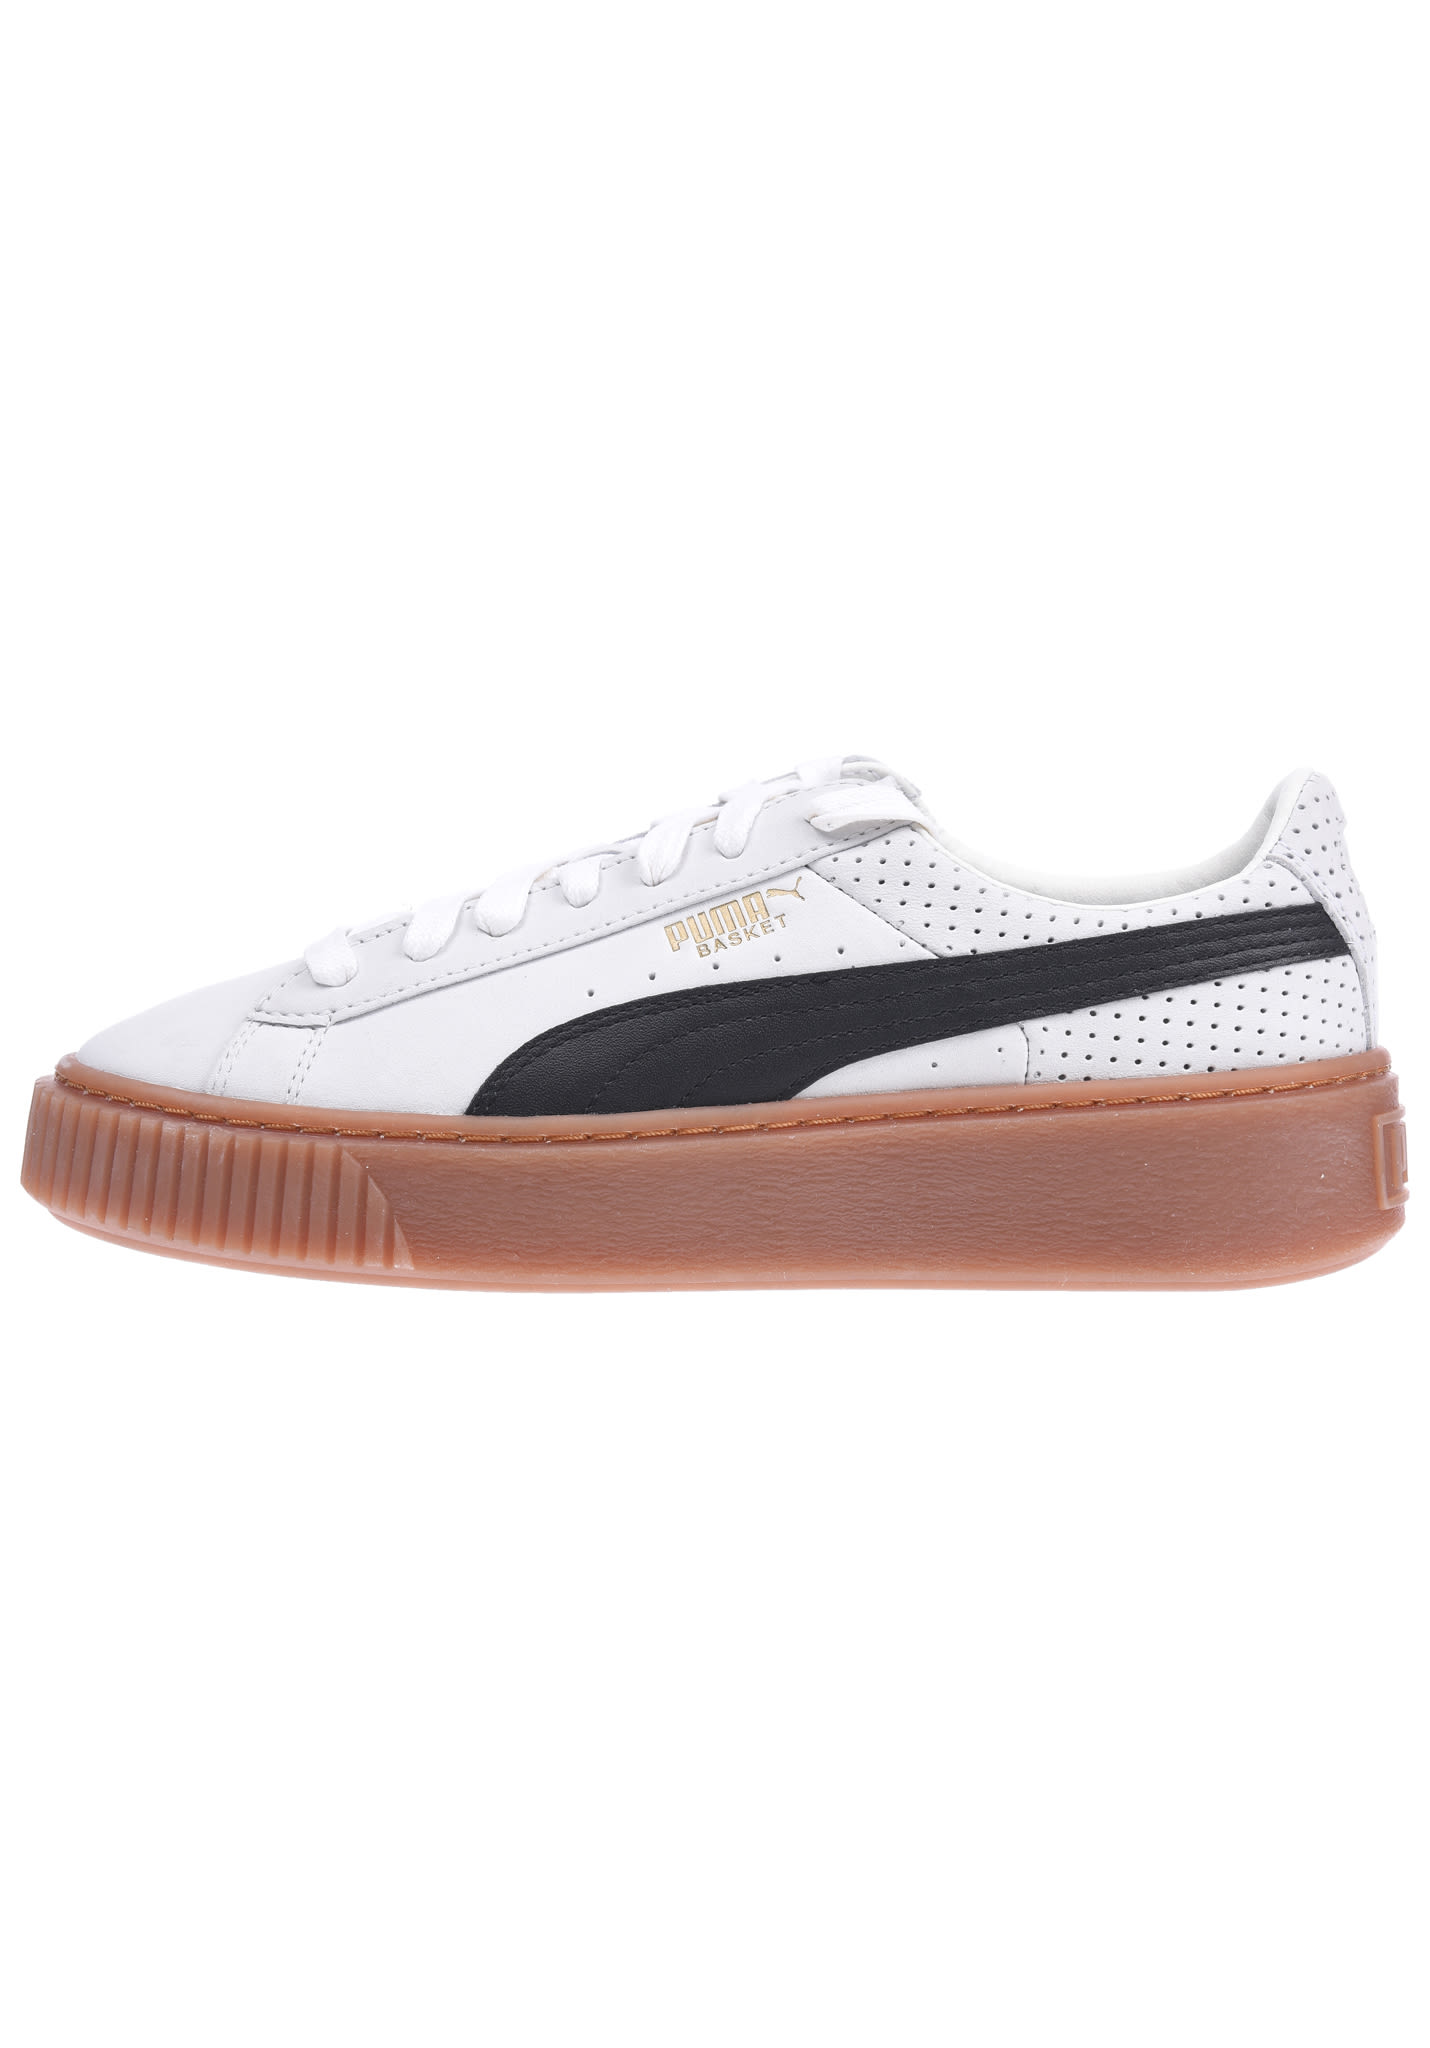 Women Basket For Planet Perf Platform Beige Puma Gum Sneakers yAqvZOvBw